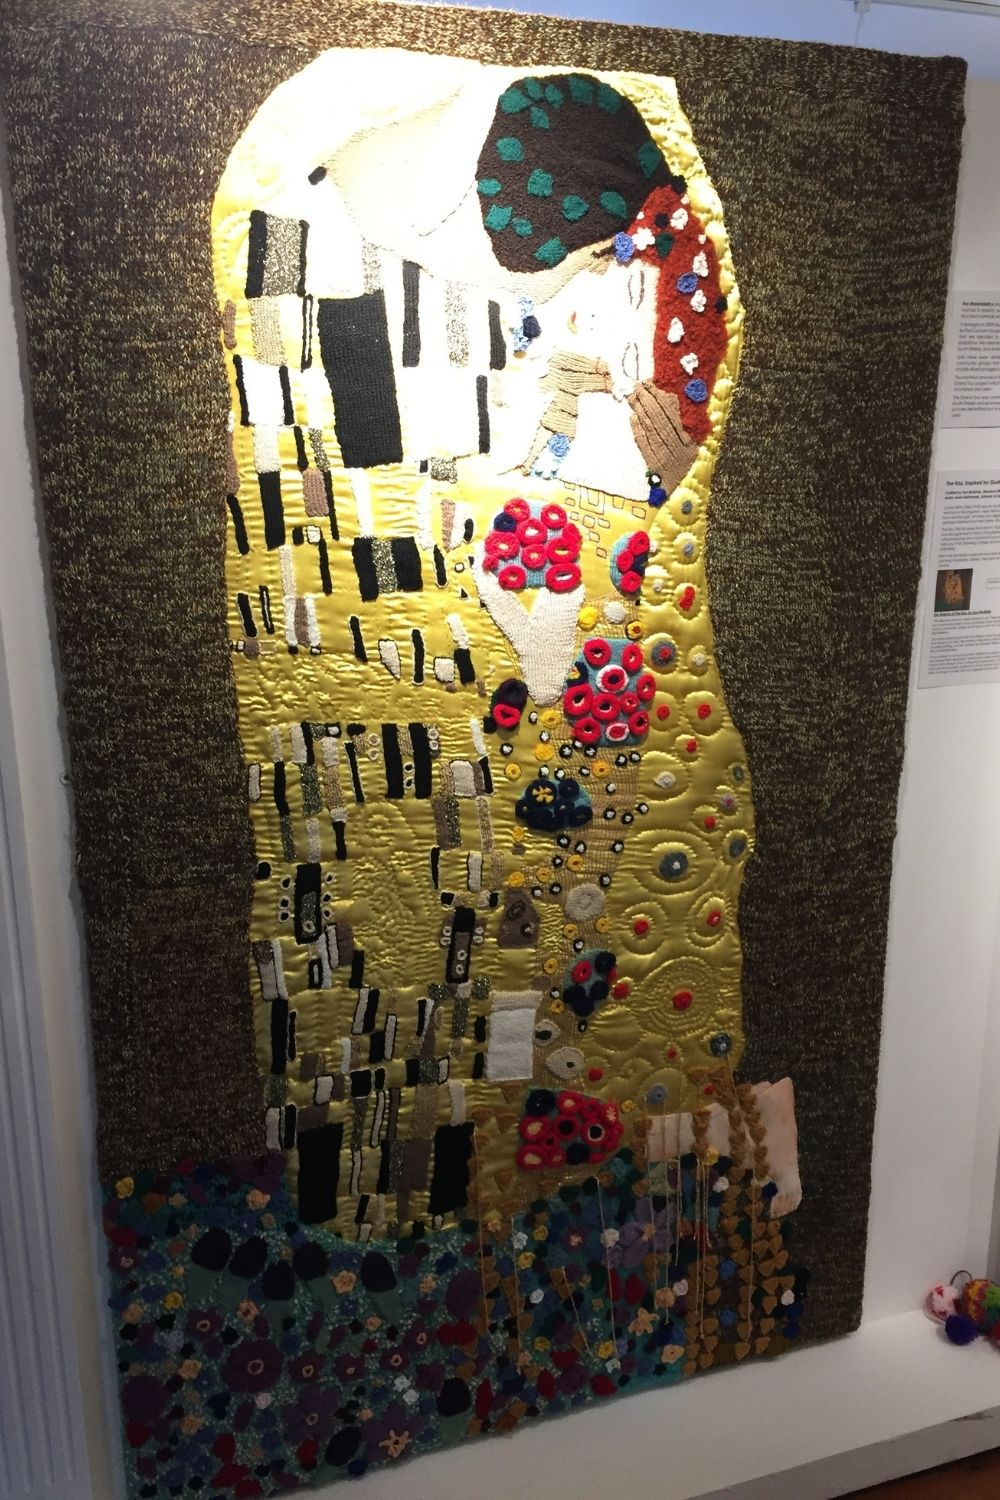 Hand-crafted version of Klimt's